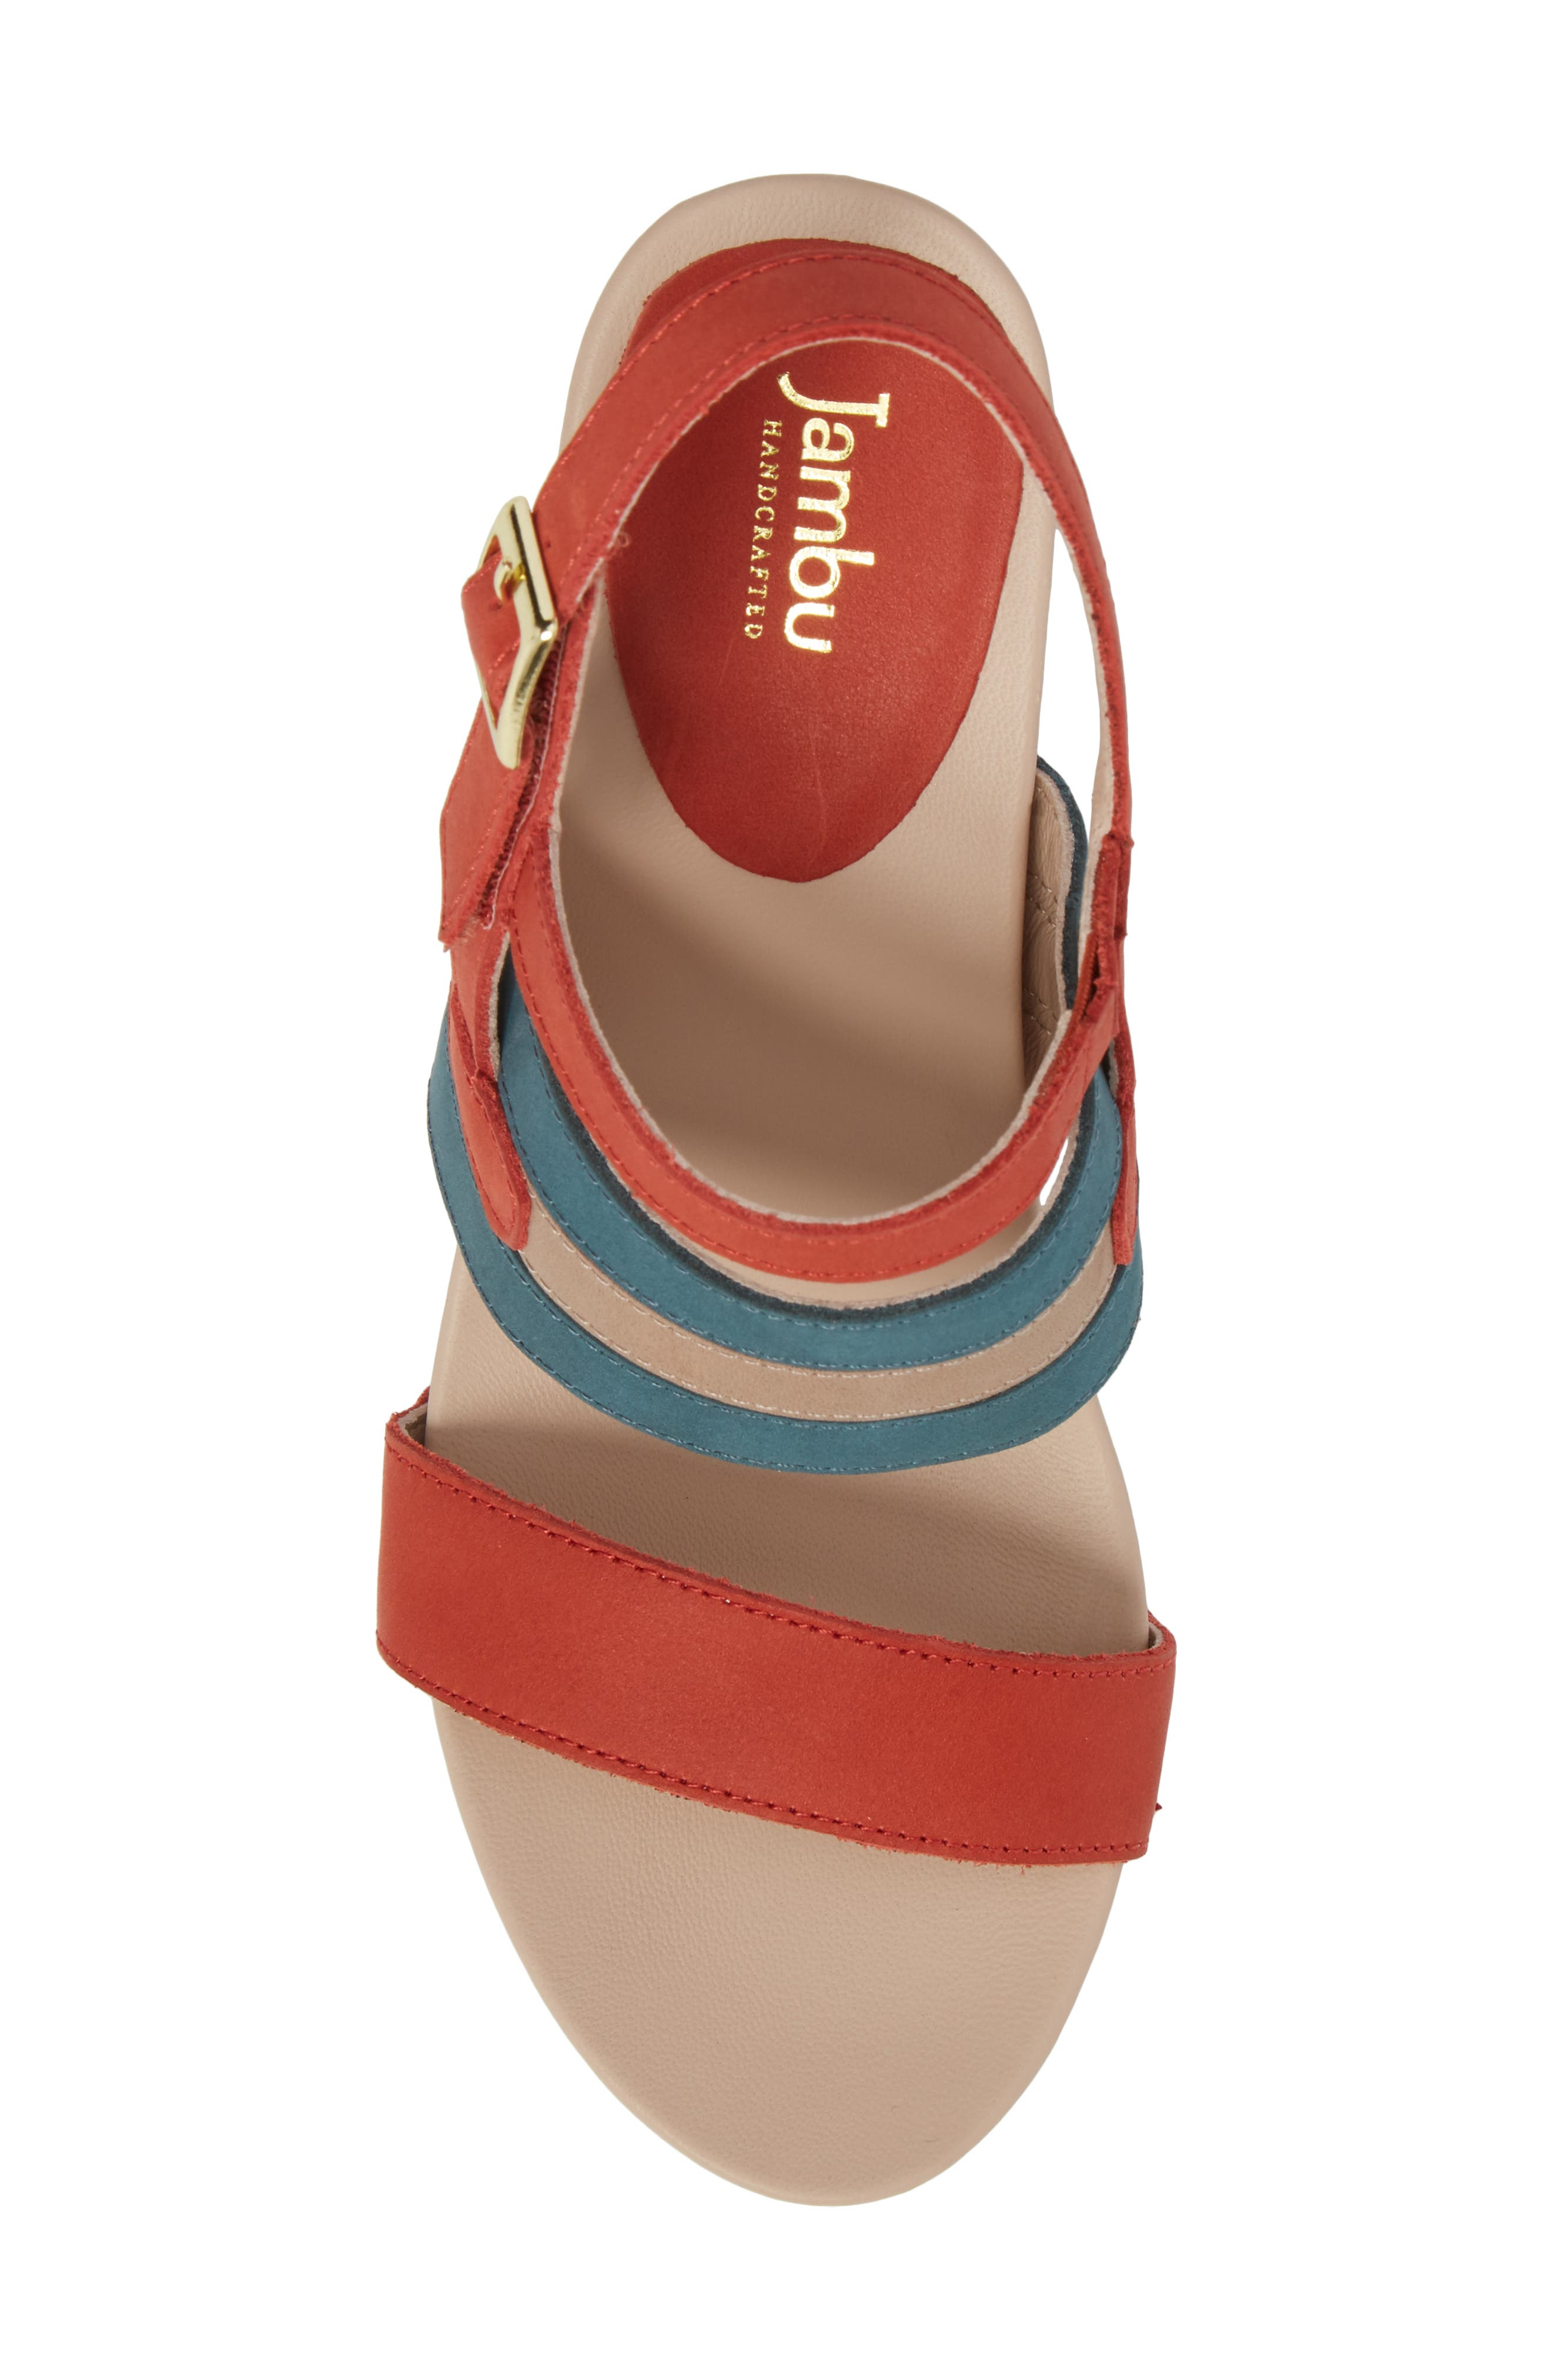 Viola Platform Sandal,                             Alternate thumbnail 5, color,                             Coral/ Teal Nubuck